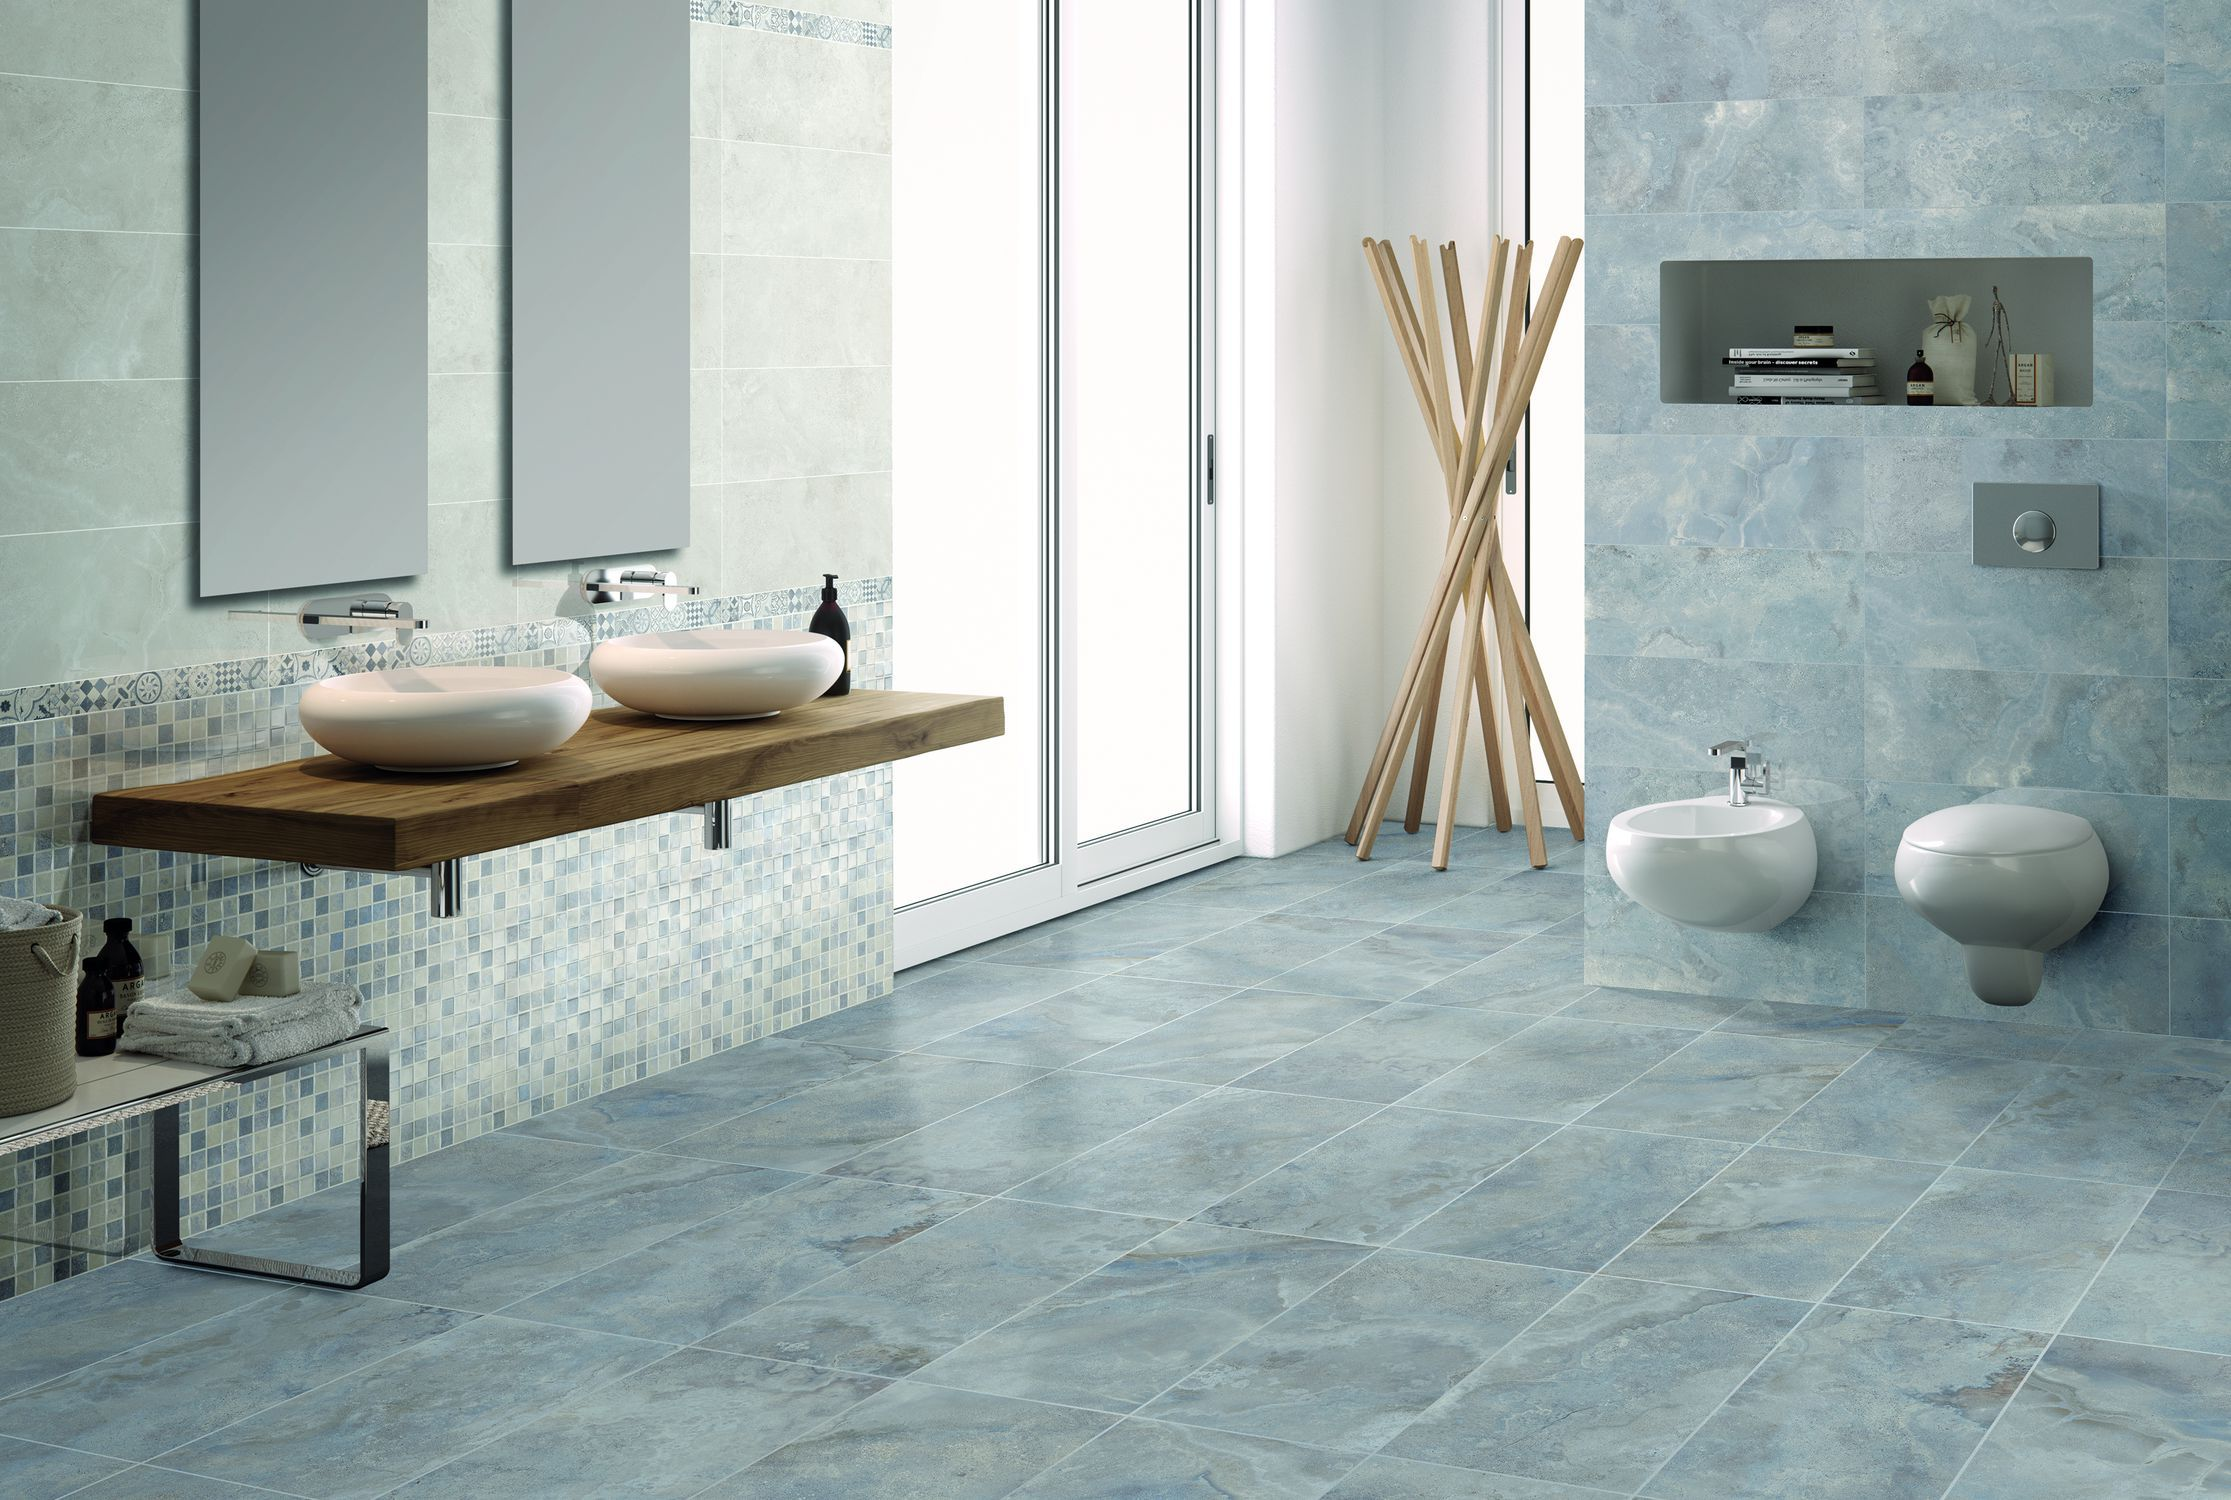 Bathroom tile / wall / floor / porcelain stoneware - RIALTO ...